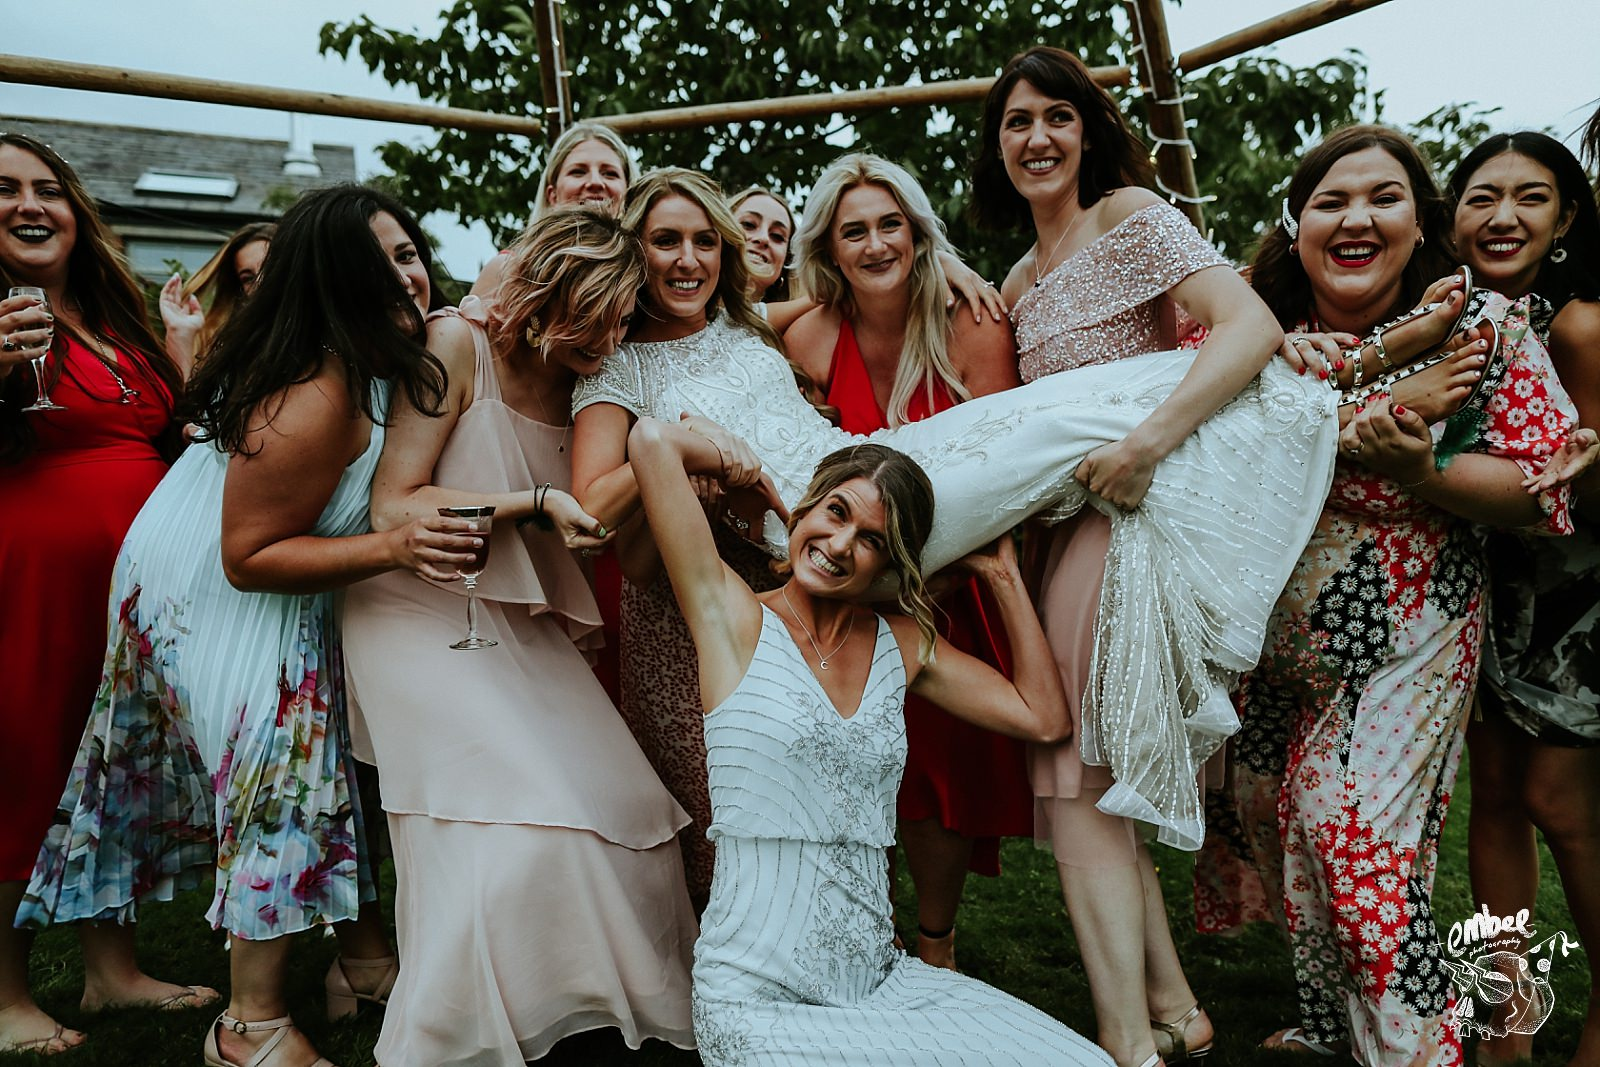 bridemaids lift up bride on her wedding